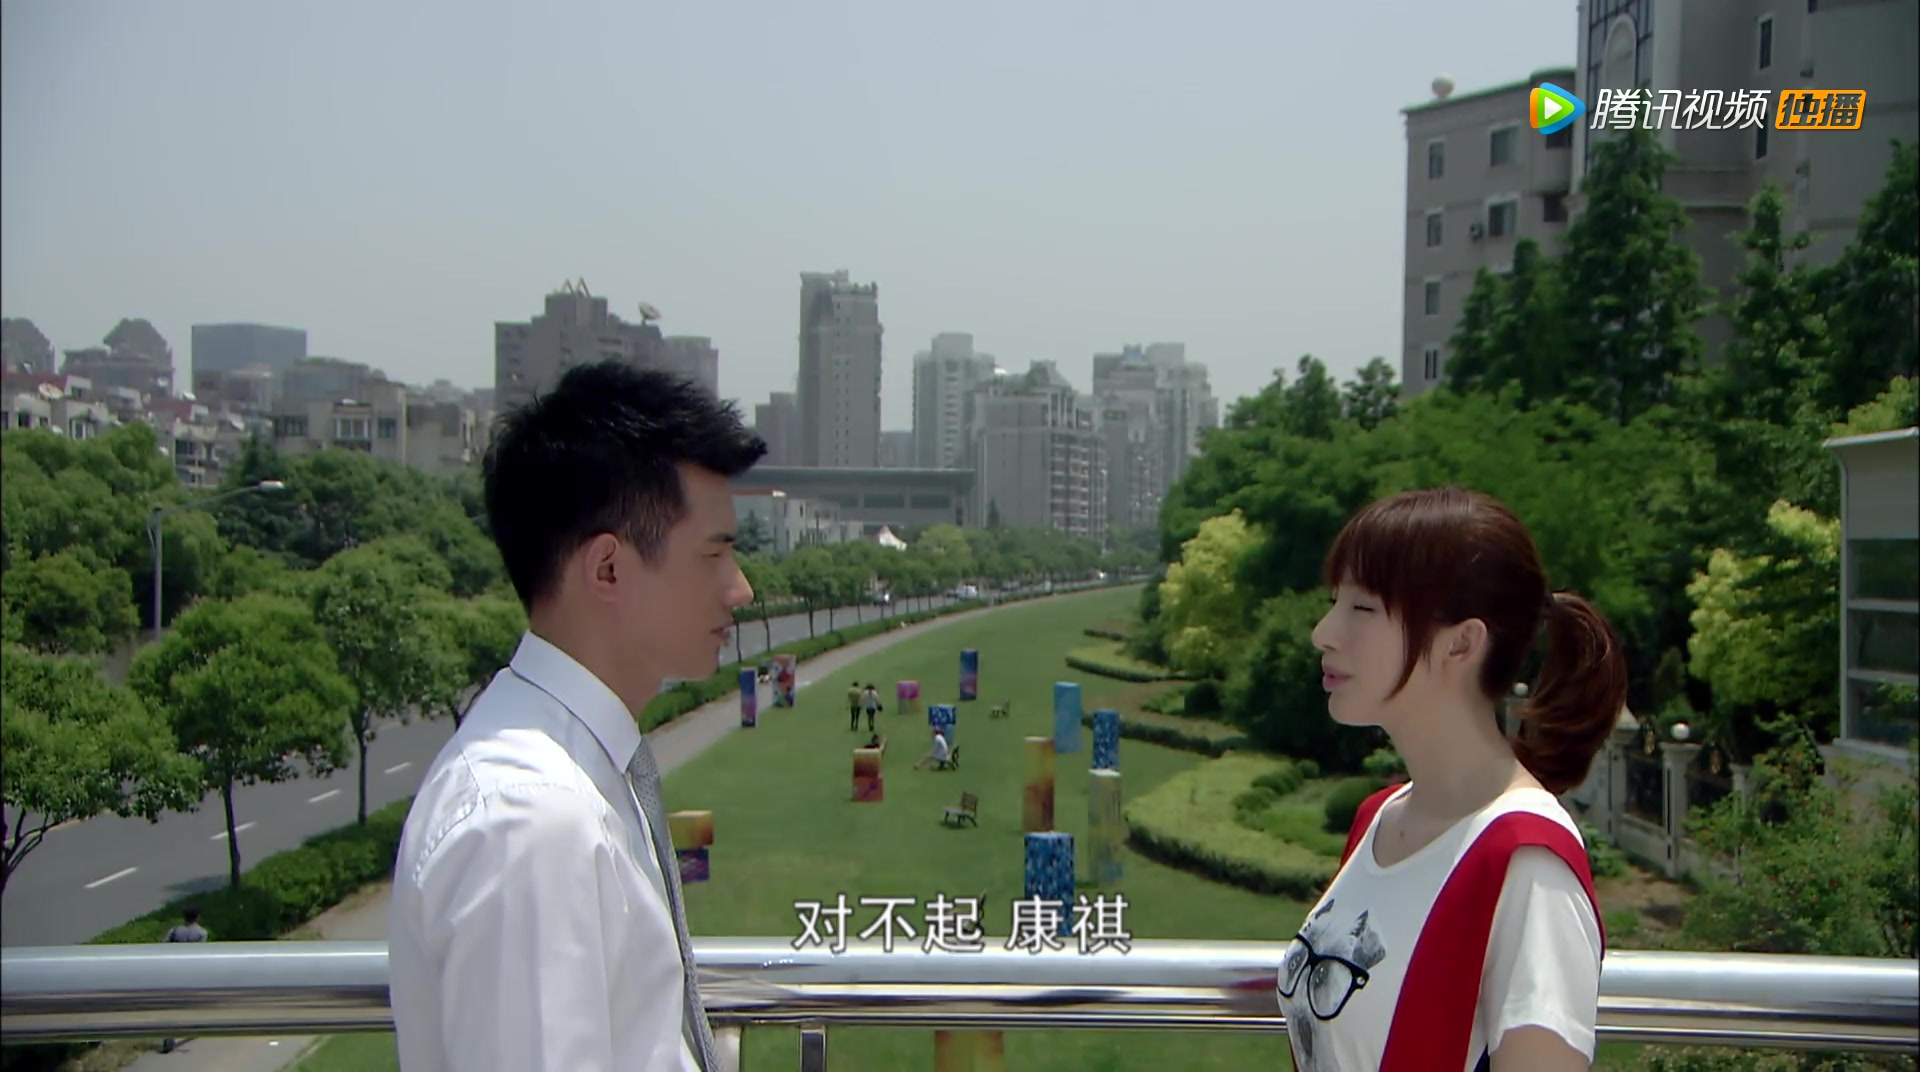 Thinking of You, Lu Xiang Bei Episode 2